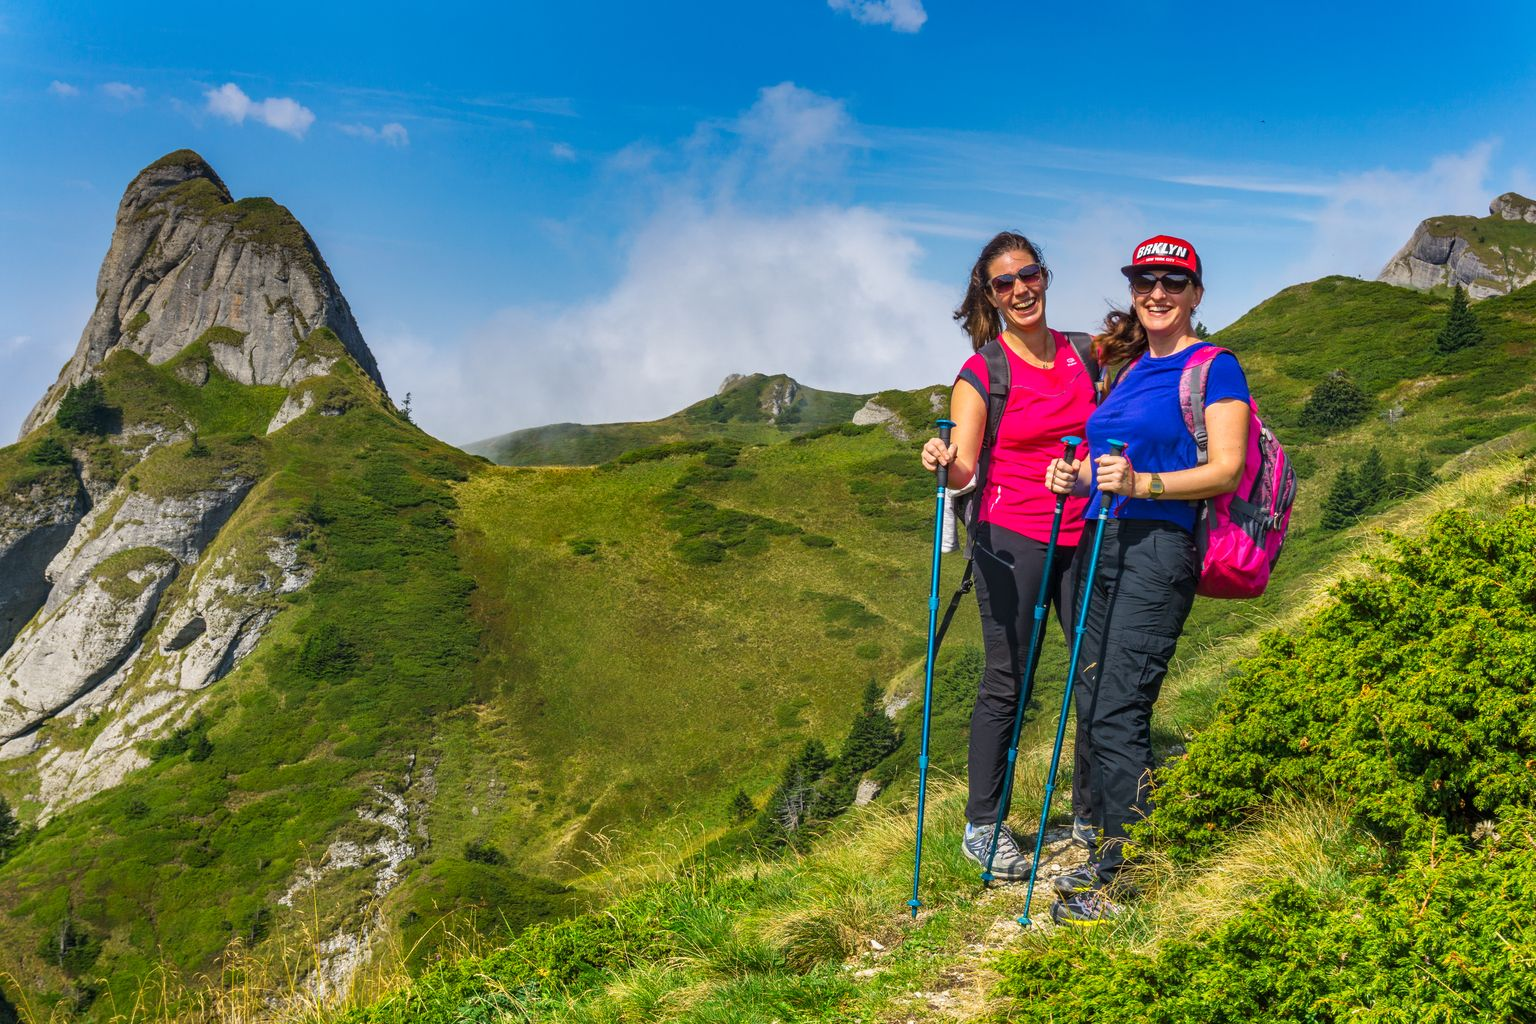 Hiking in the Carpathians in Romania